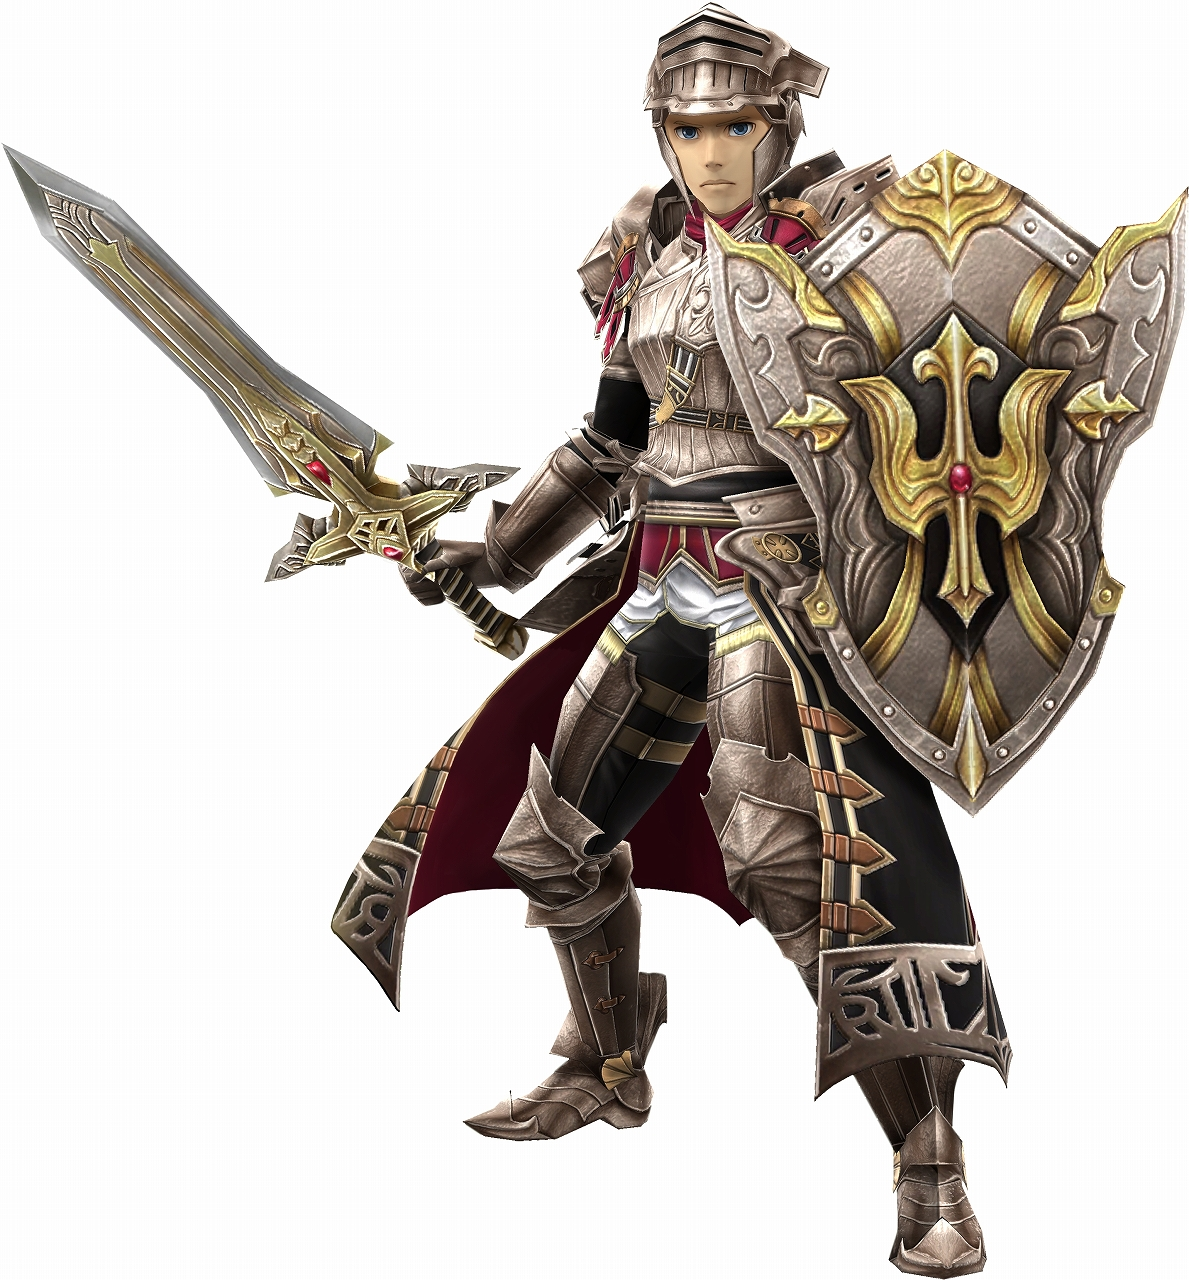 6souls games game like looks fight time urghan edit some khimaira reminded where boss took ability place icon sure there will test beta squall break limit ever currency that something best phone vanadiel look think this were they right androidios explorers-force fantasy open field mandragoras saying going final especially fungood player able